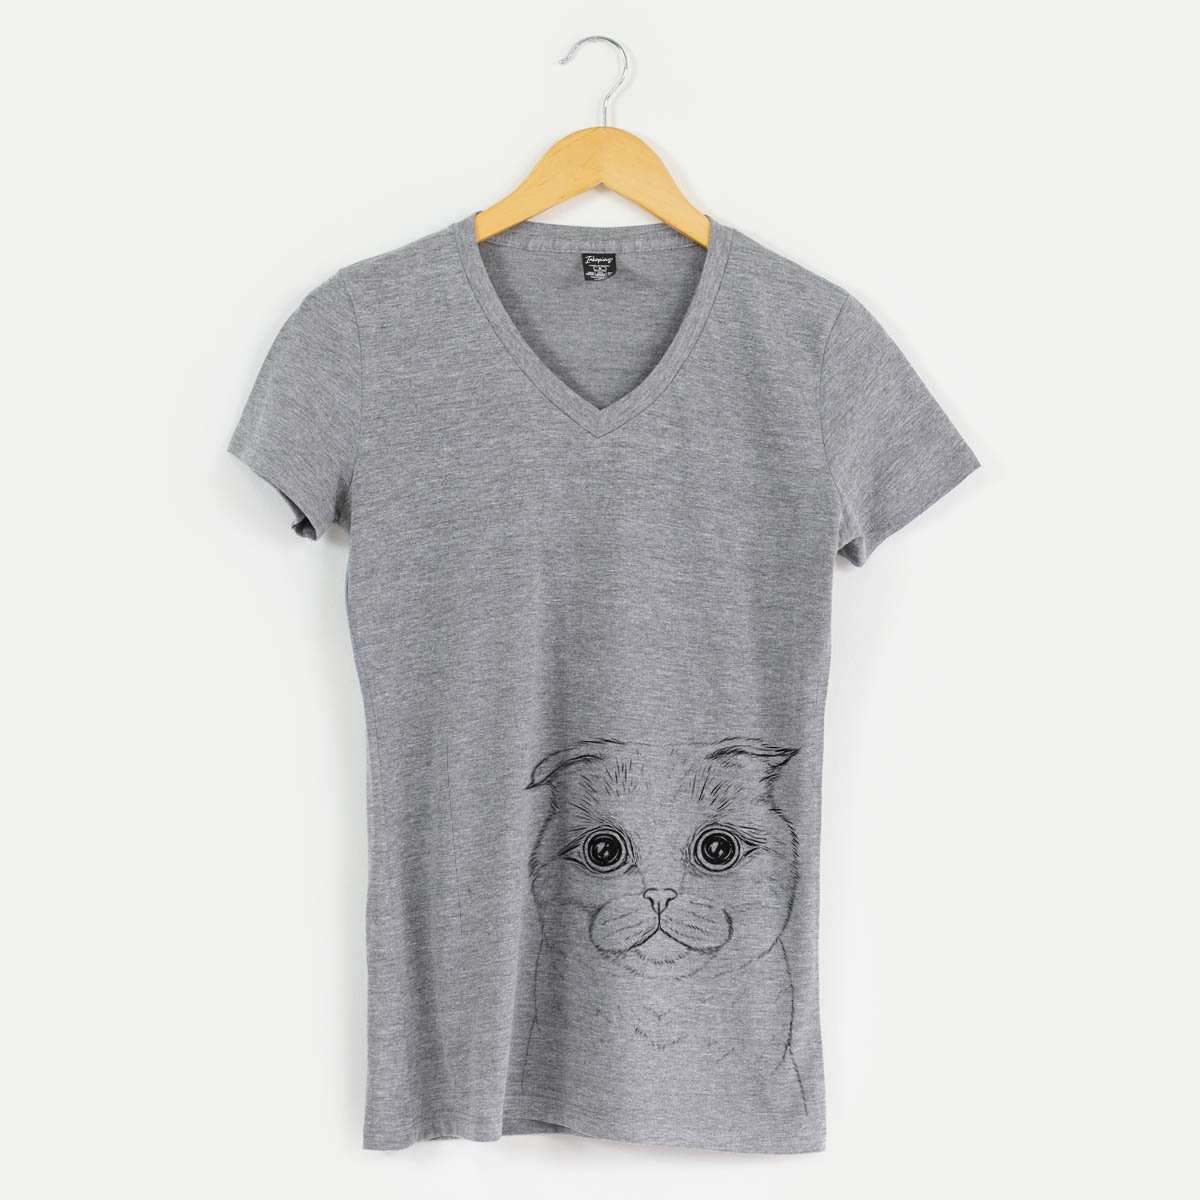 Neko the Scottish Fold Cat - Women's Modern Fit V-neck Shirt